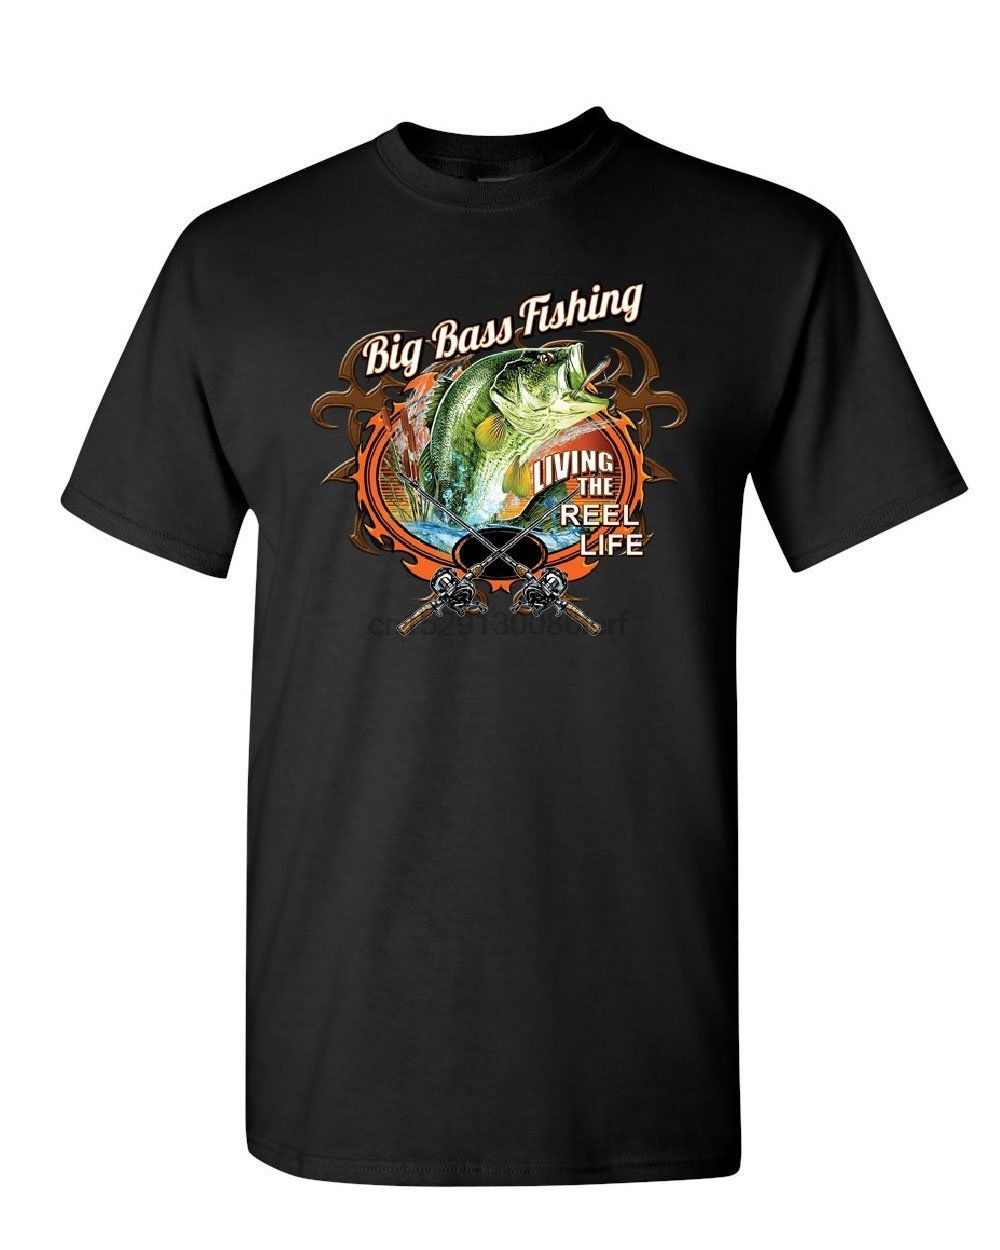 Big Bass Fishing Youth T-Shirt Living the Reel Life Fisherman Spinning Kids Tee